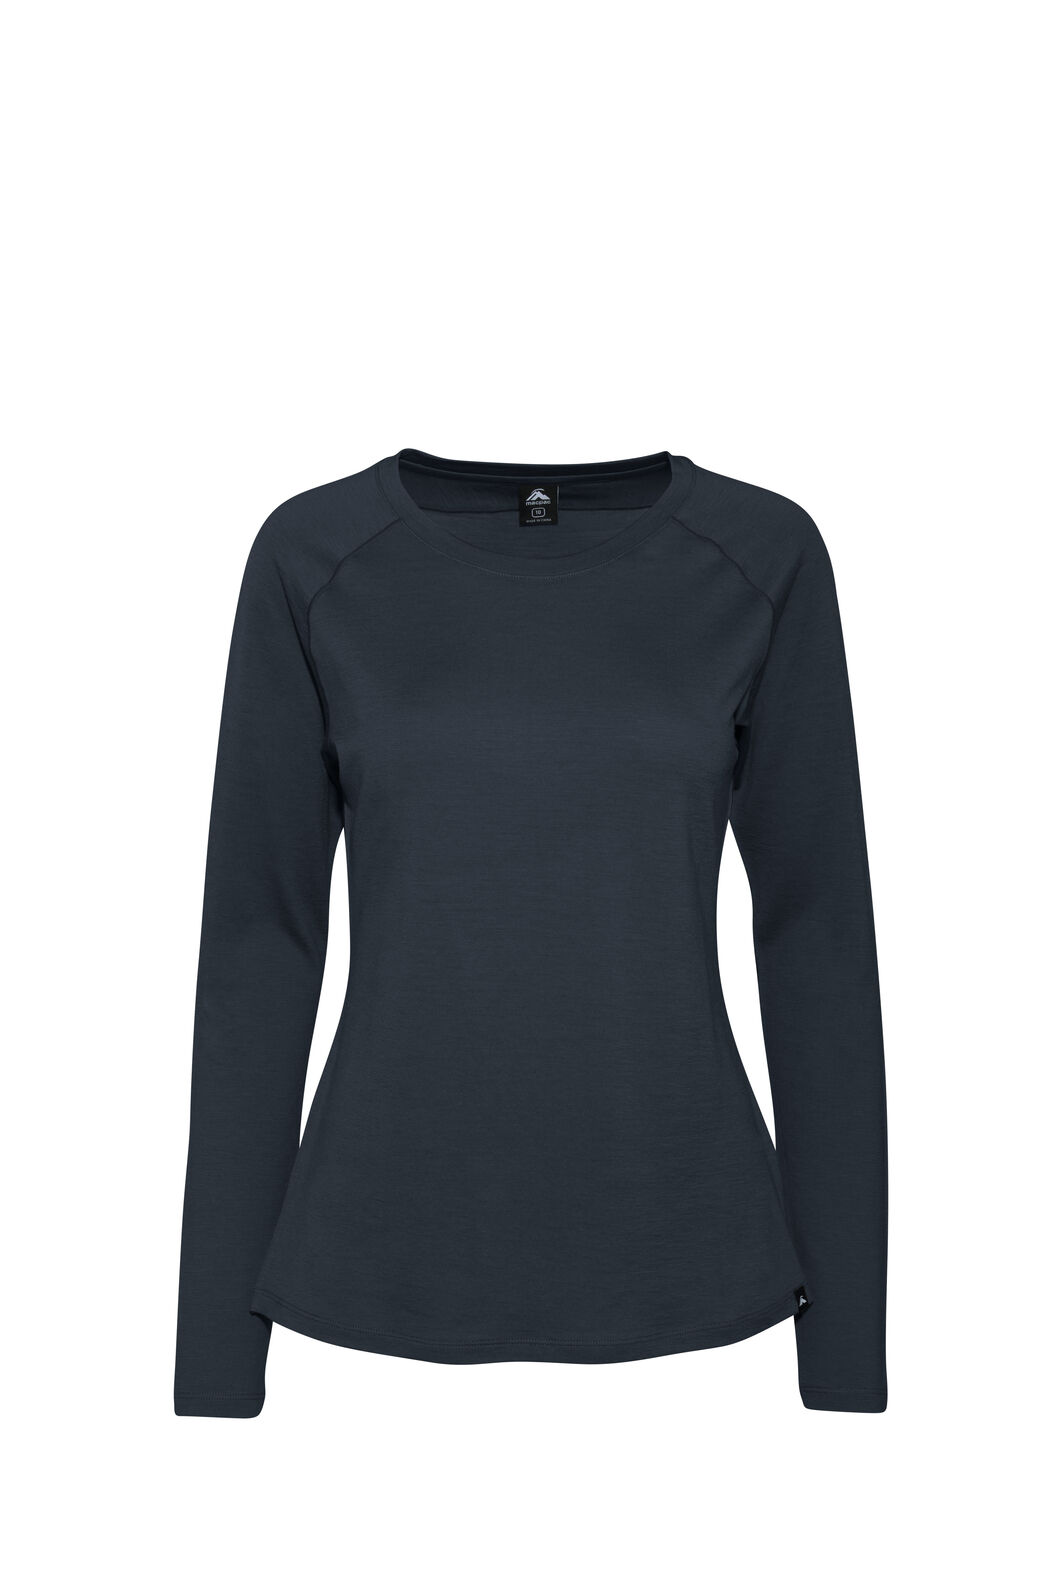 Macpac Ella Long Sleeve Merino Tee — Women's, Black Iris, hi-res